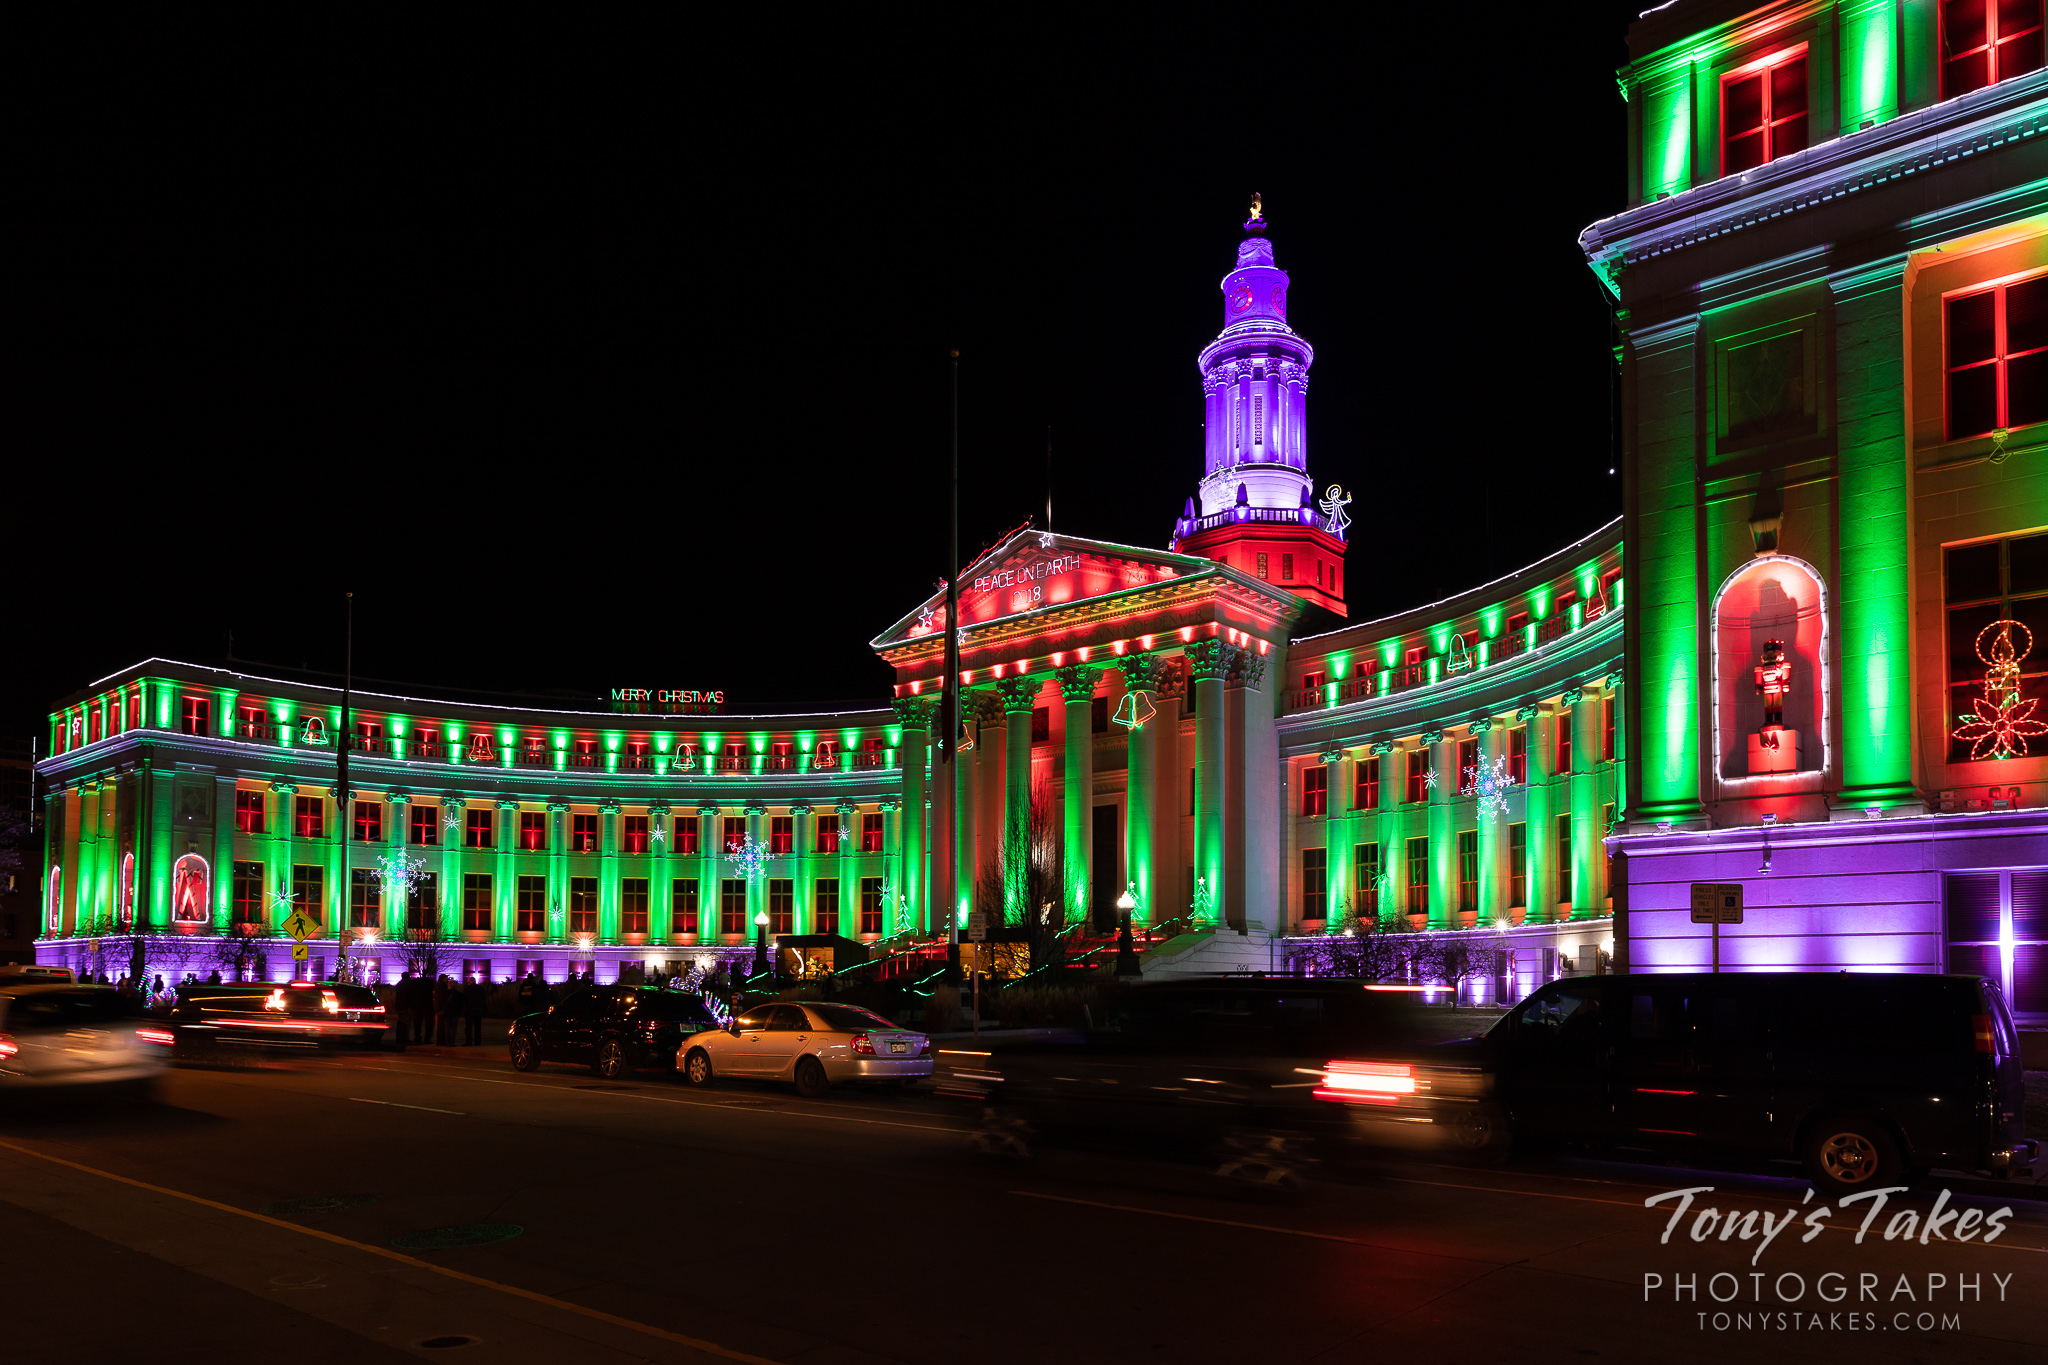 The Denver City and County Building is lit up for Christmas. (© Tony's Takes)